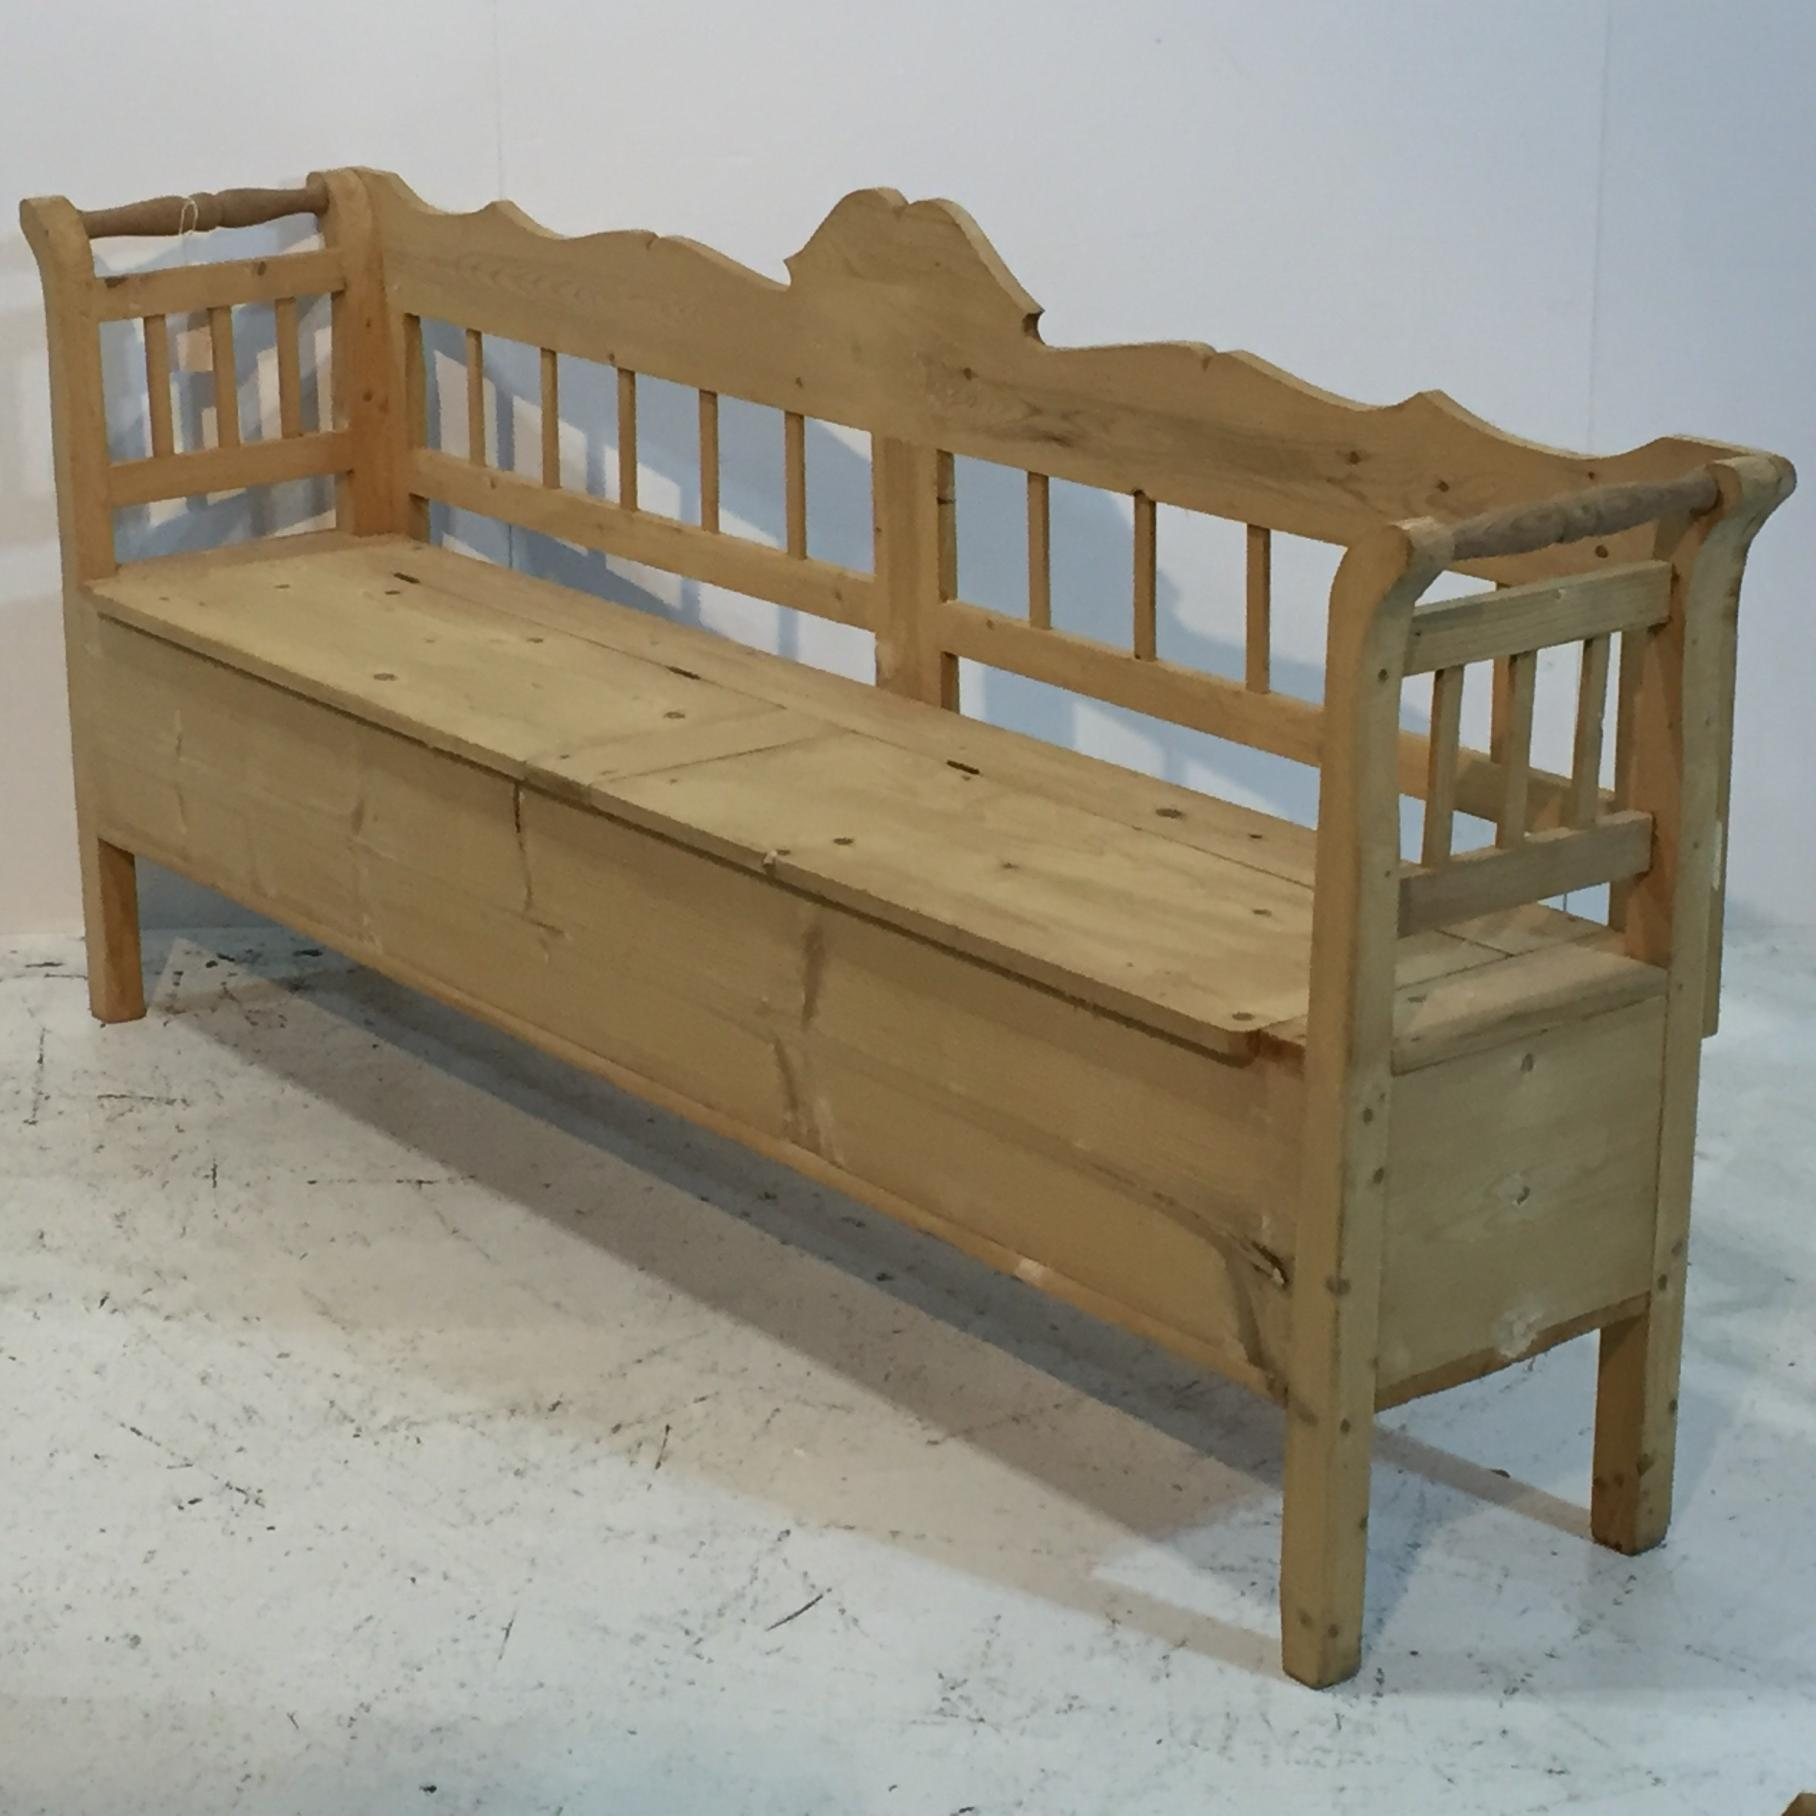 Antique Pine Bench With Storage Benches